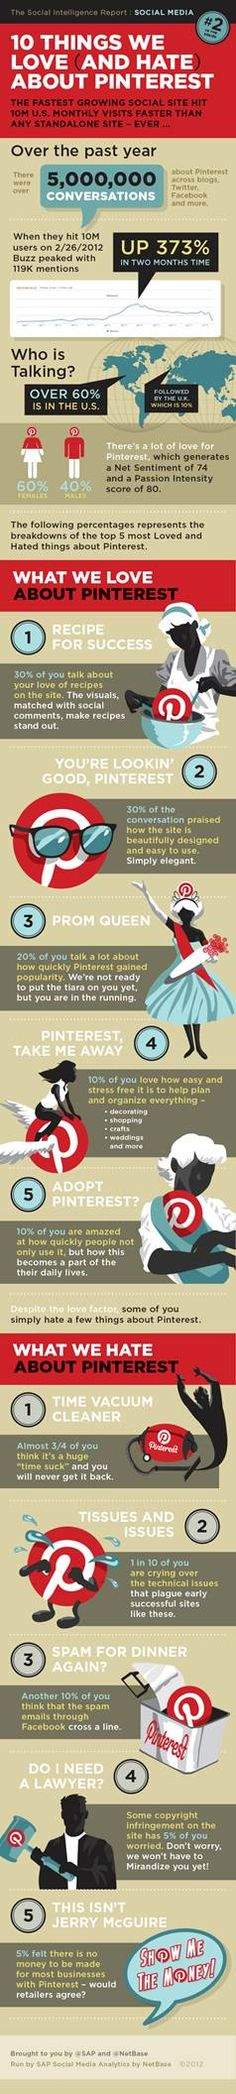 Pinterest, Photo Sharing and What it Means for Customer Experience.